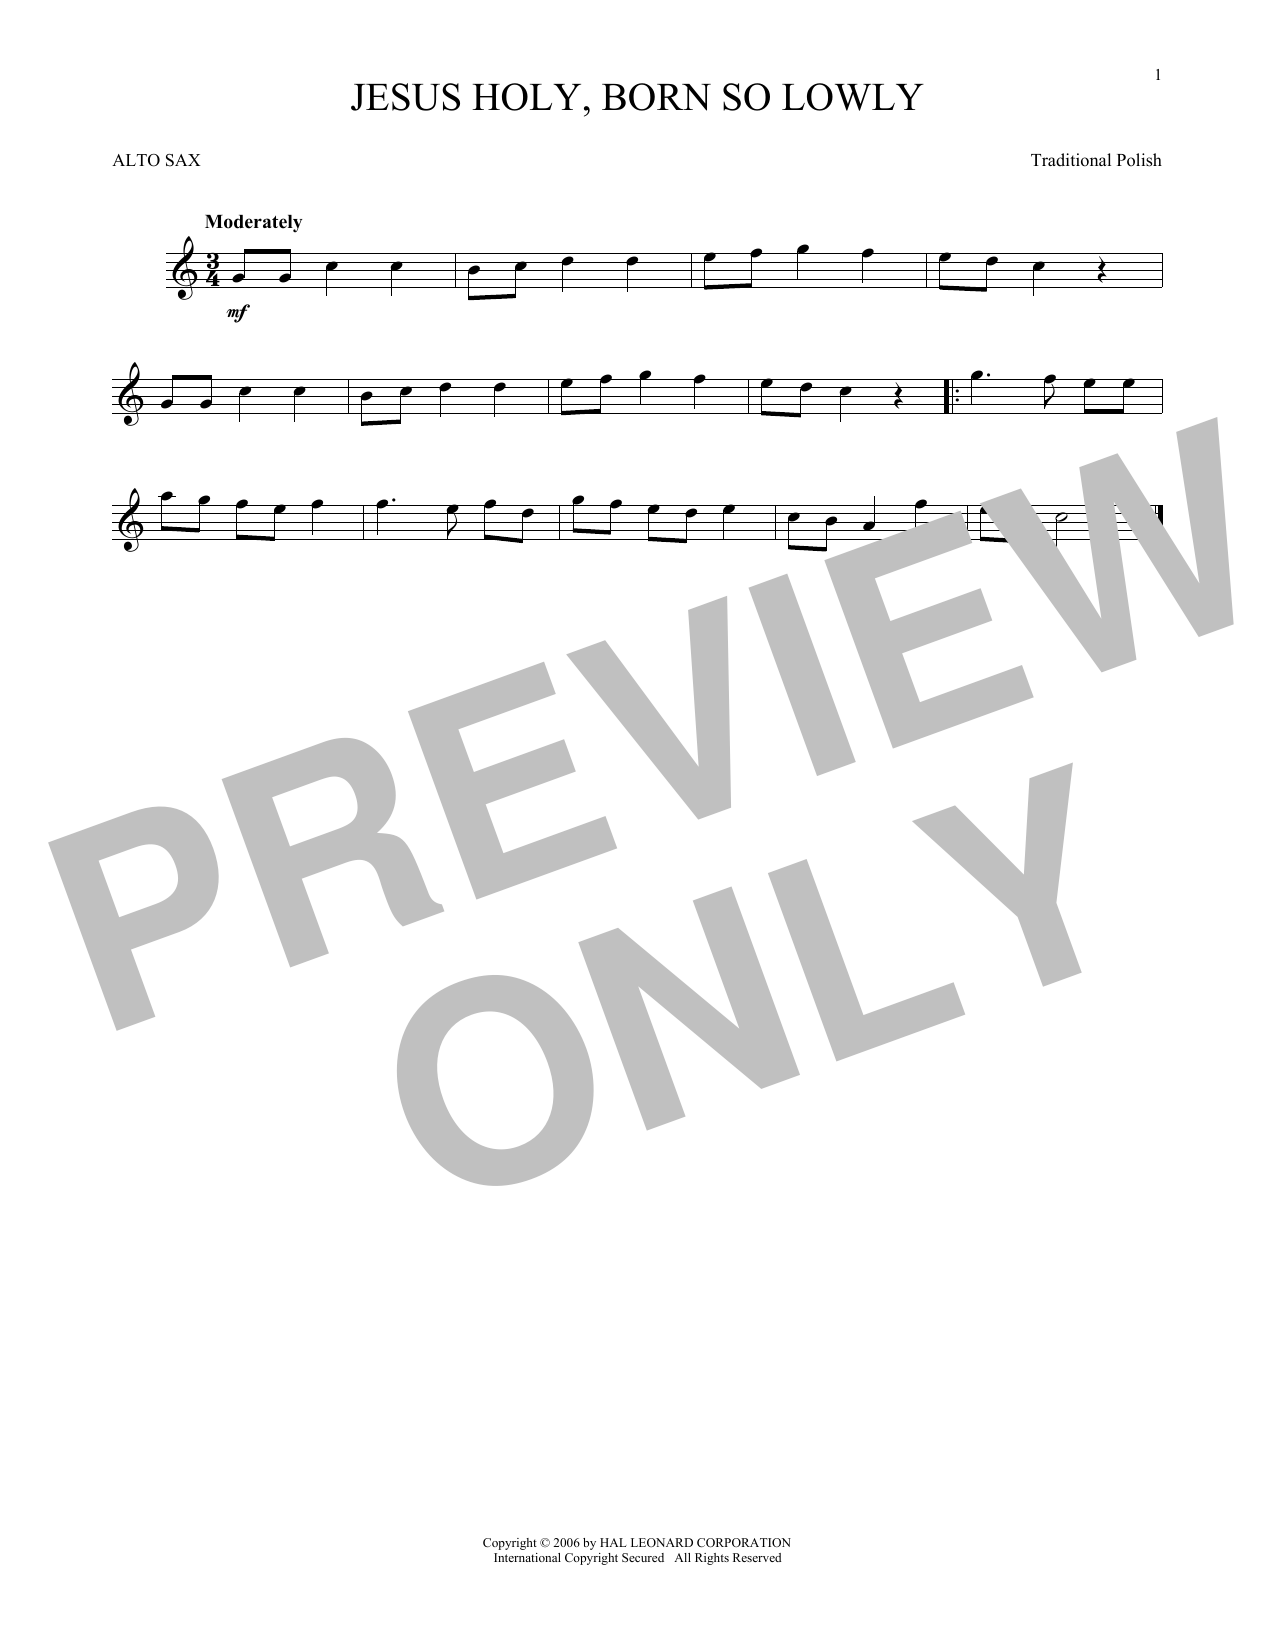 Traditional Carol Jesus Holy, Born So Lowly sheet music notes and chords. Download Printable PDF.